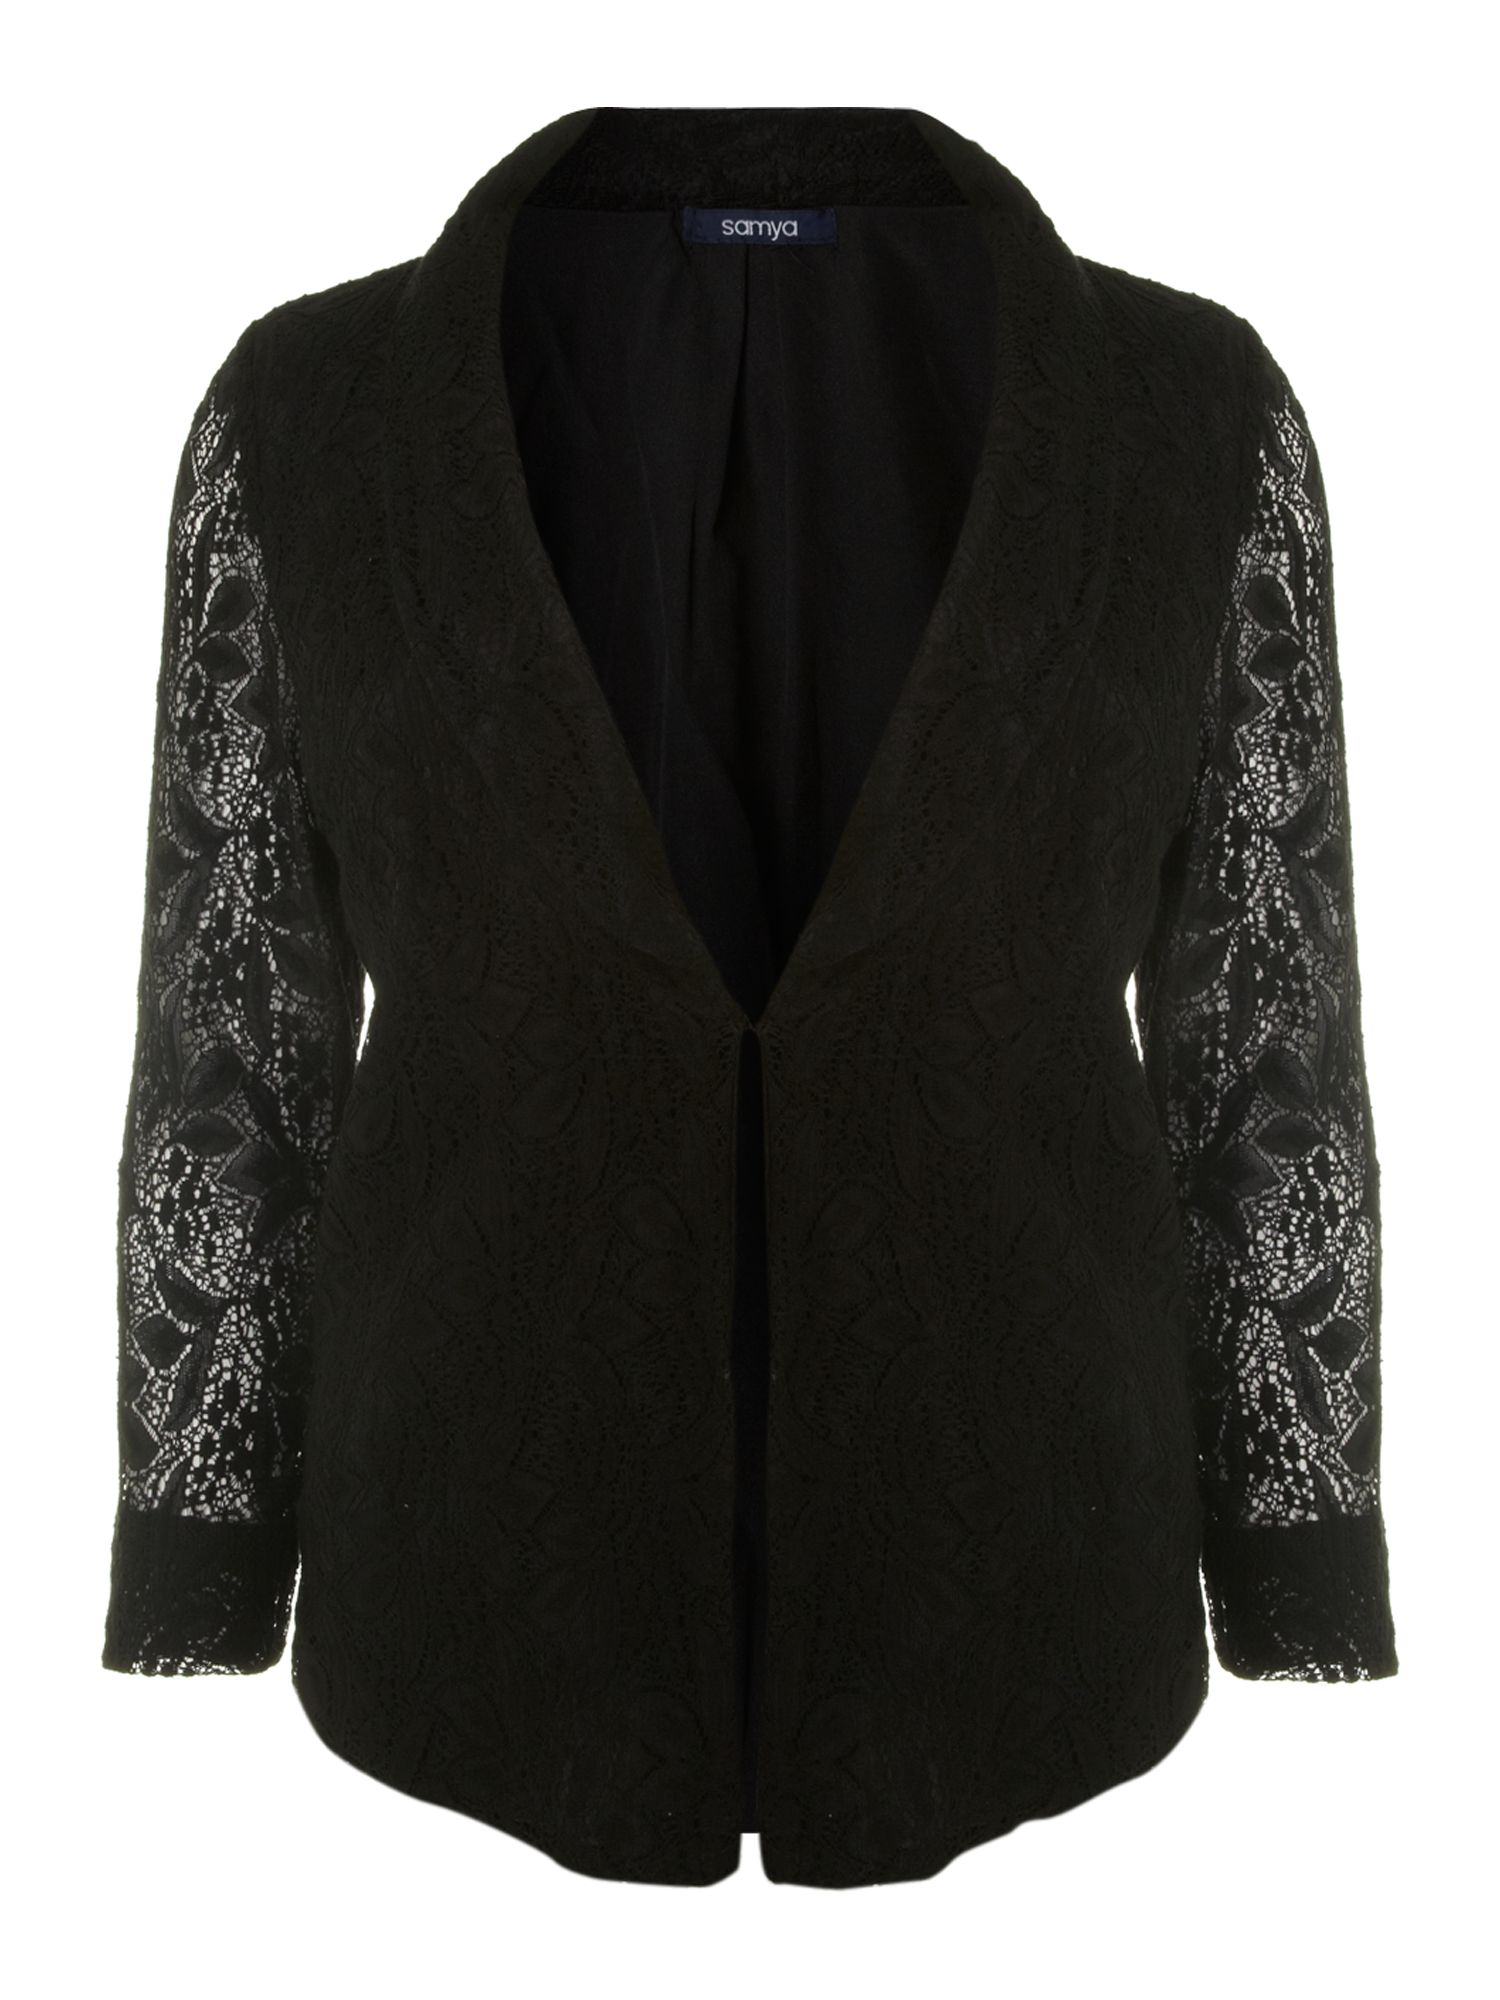 Lace jacket sheer sleeves